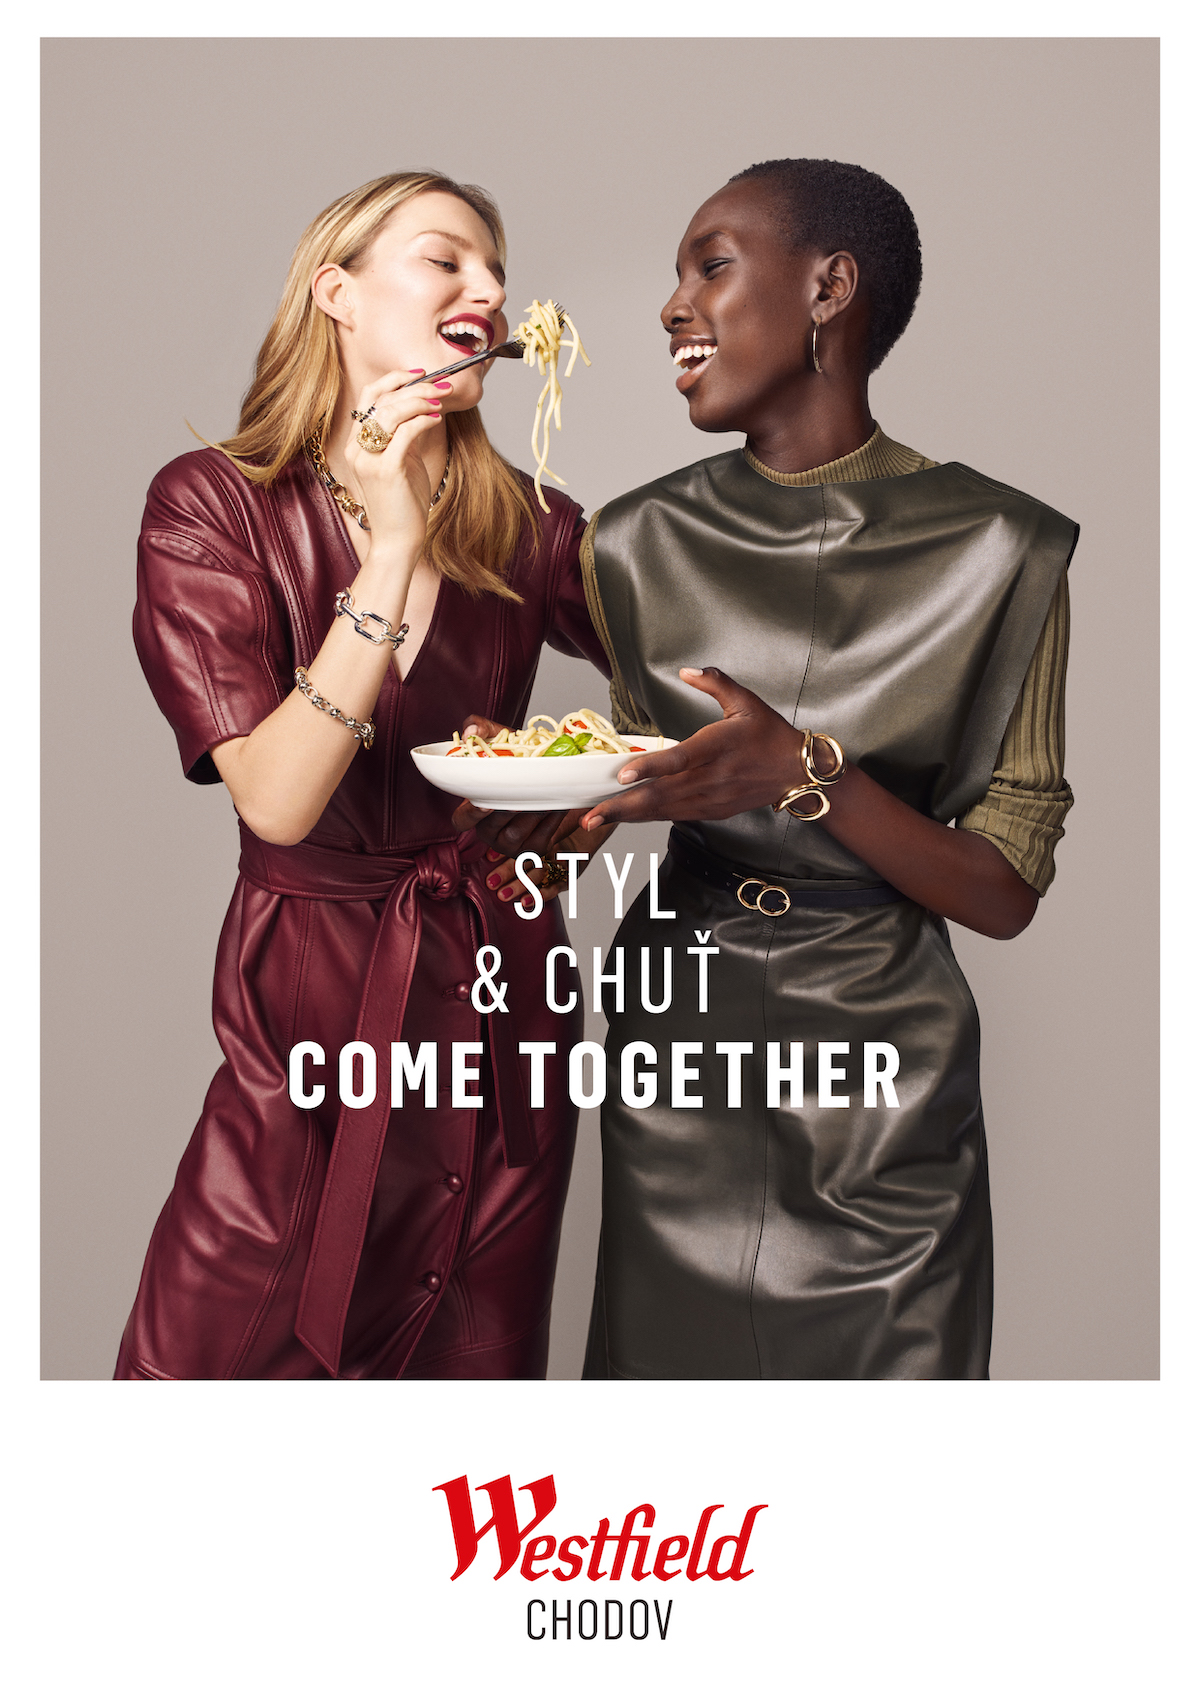 Come Together: Styl & chuť